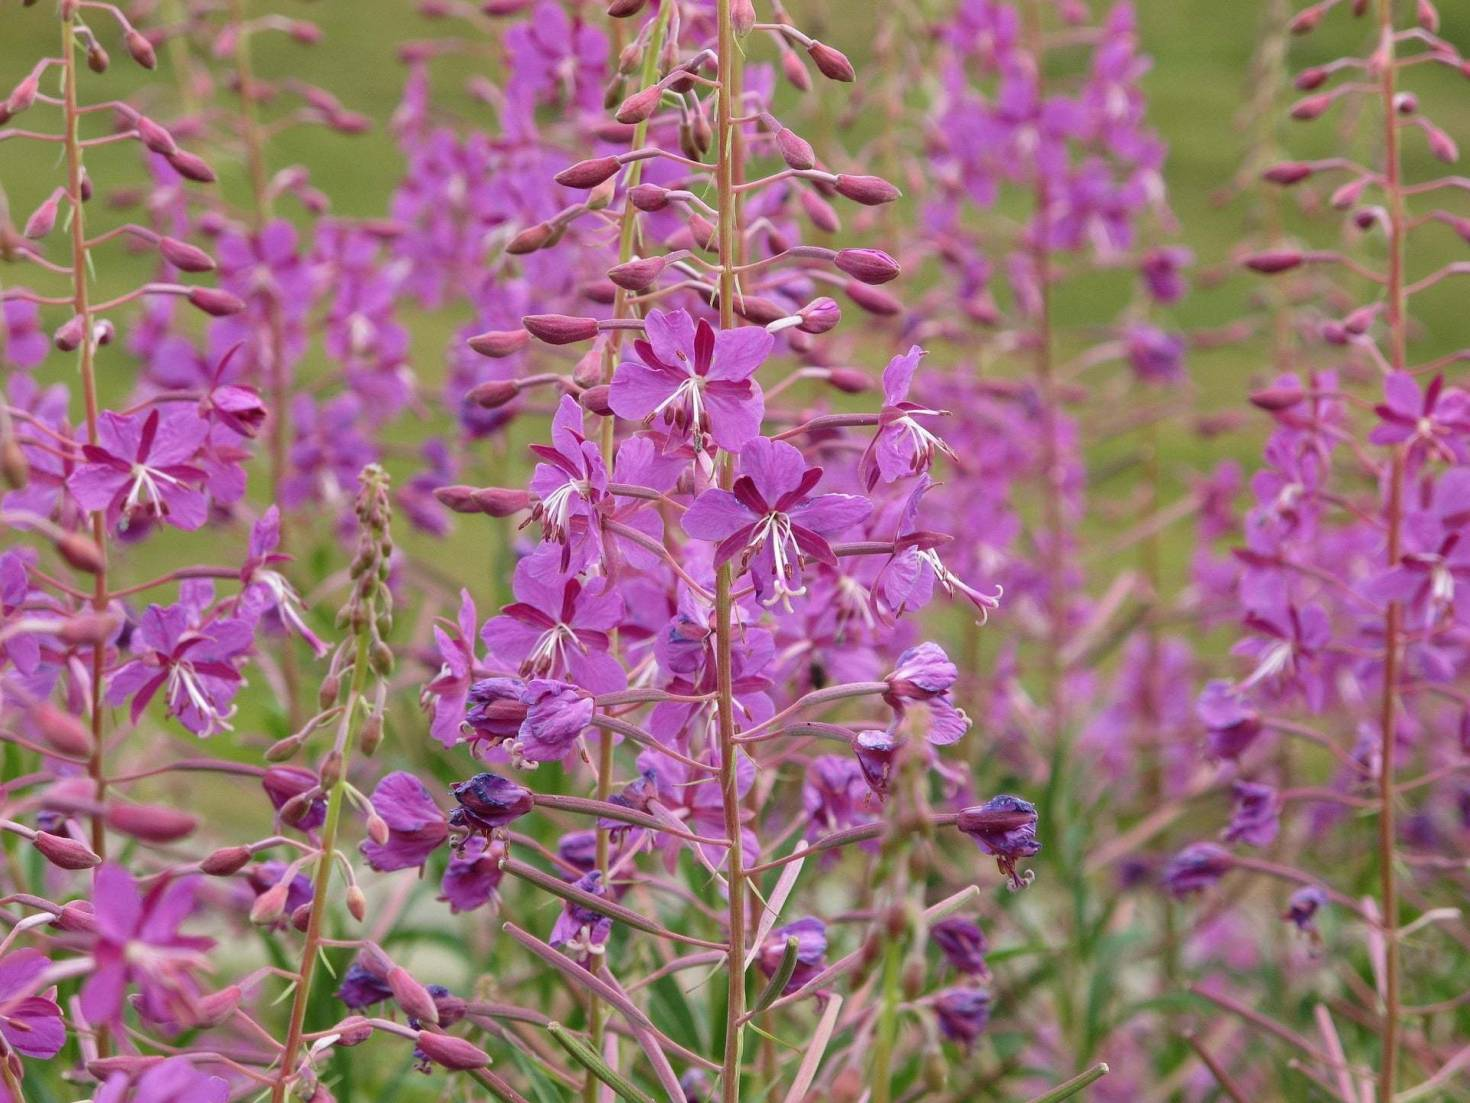 The Edible Plant Fireweed